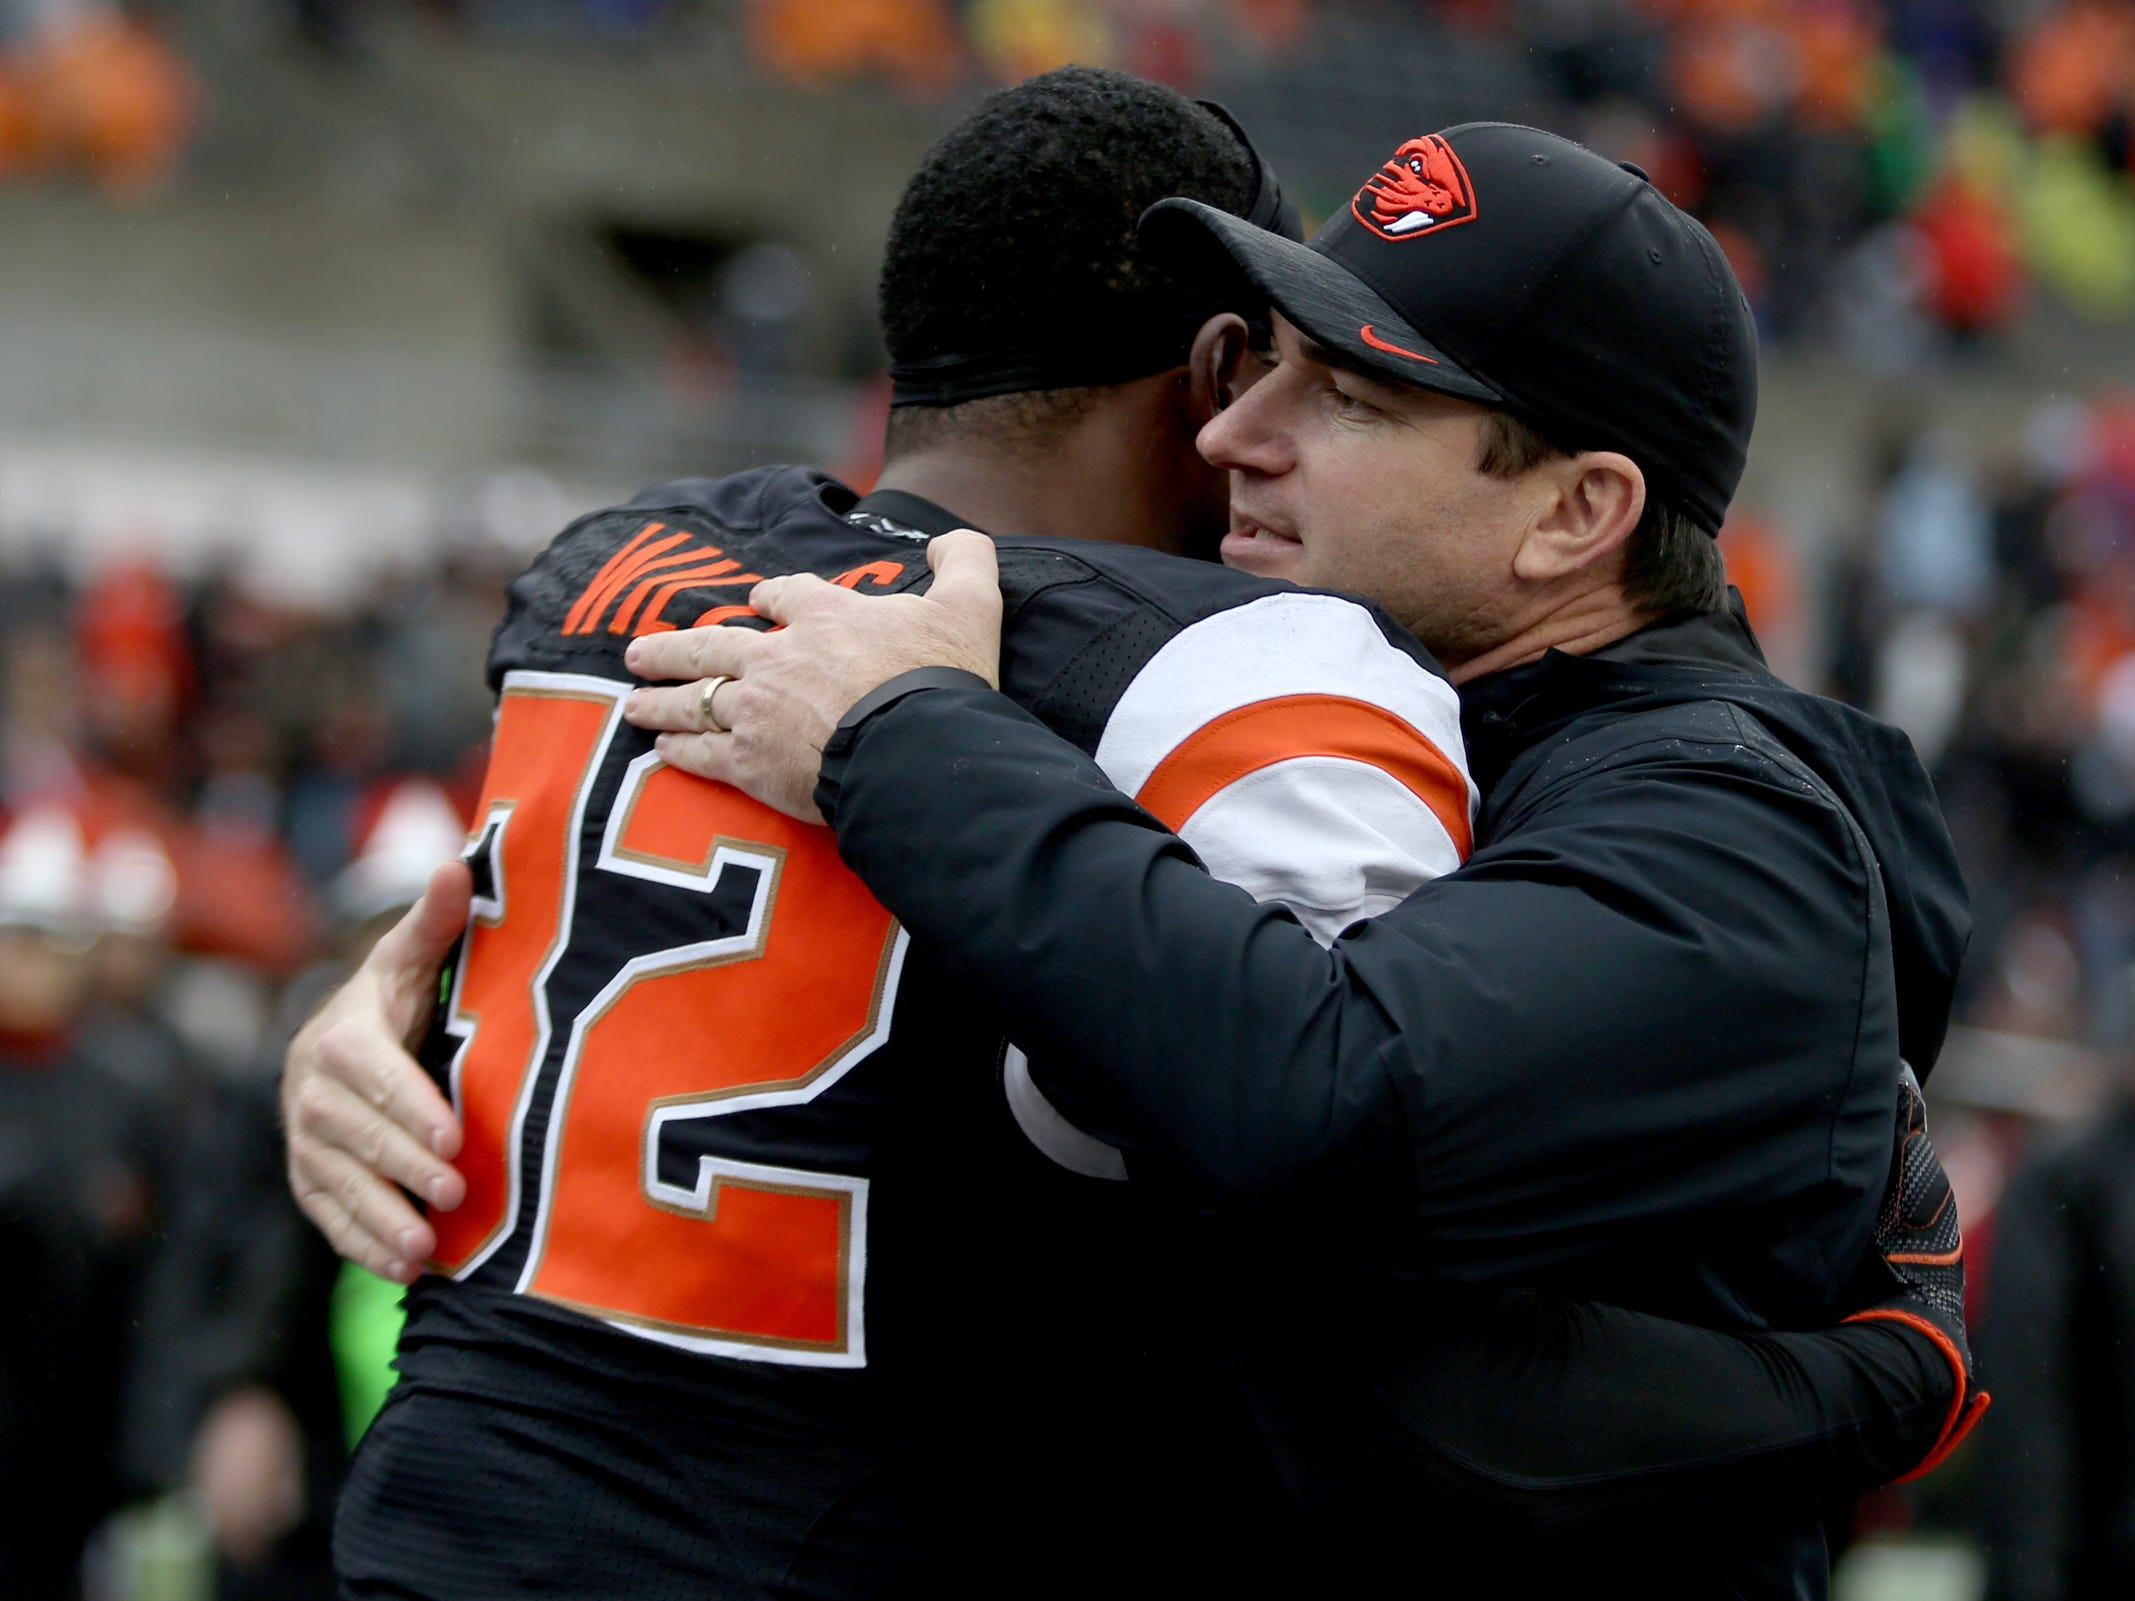 Oregon State head coach Jonathan Smith hugs senior Jonathan Willis (32) before the start of the Oregon vs. Oregon State Civil war football game at Oregon State University in Corvallis on Friday, Nov. 23, 2018.